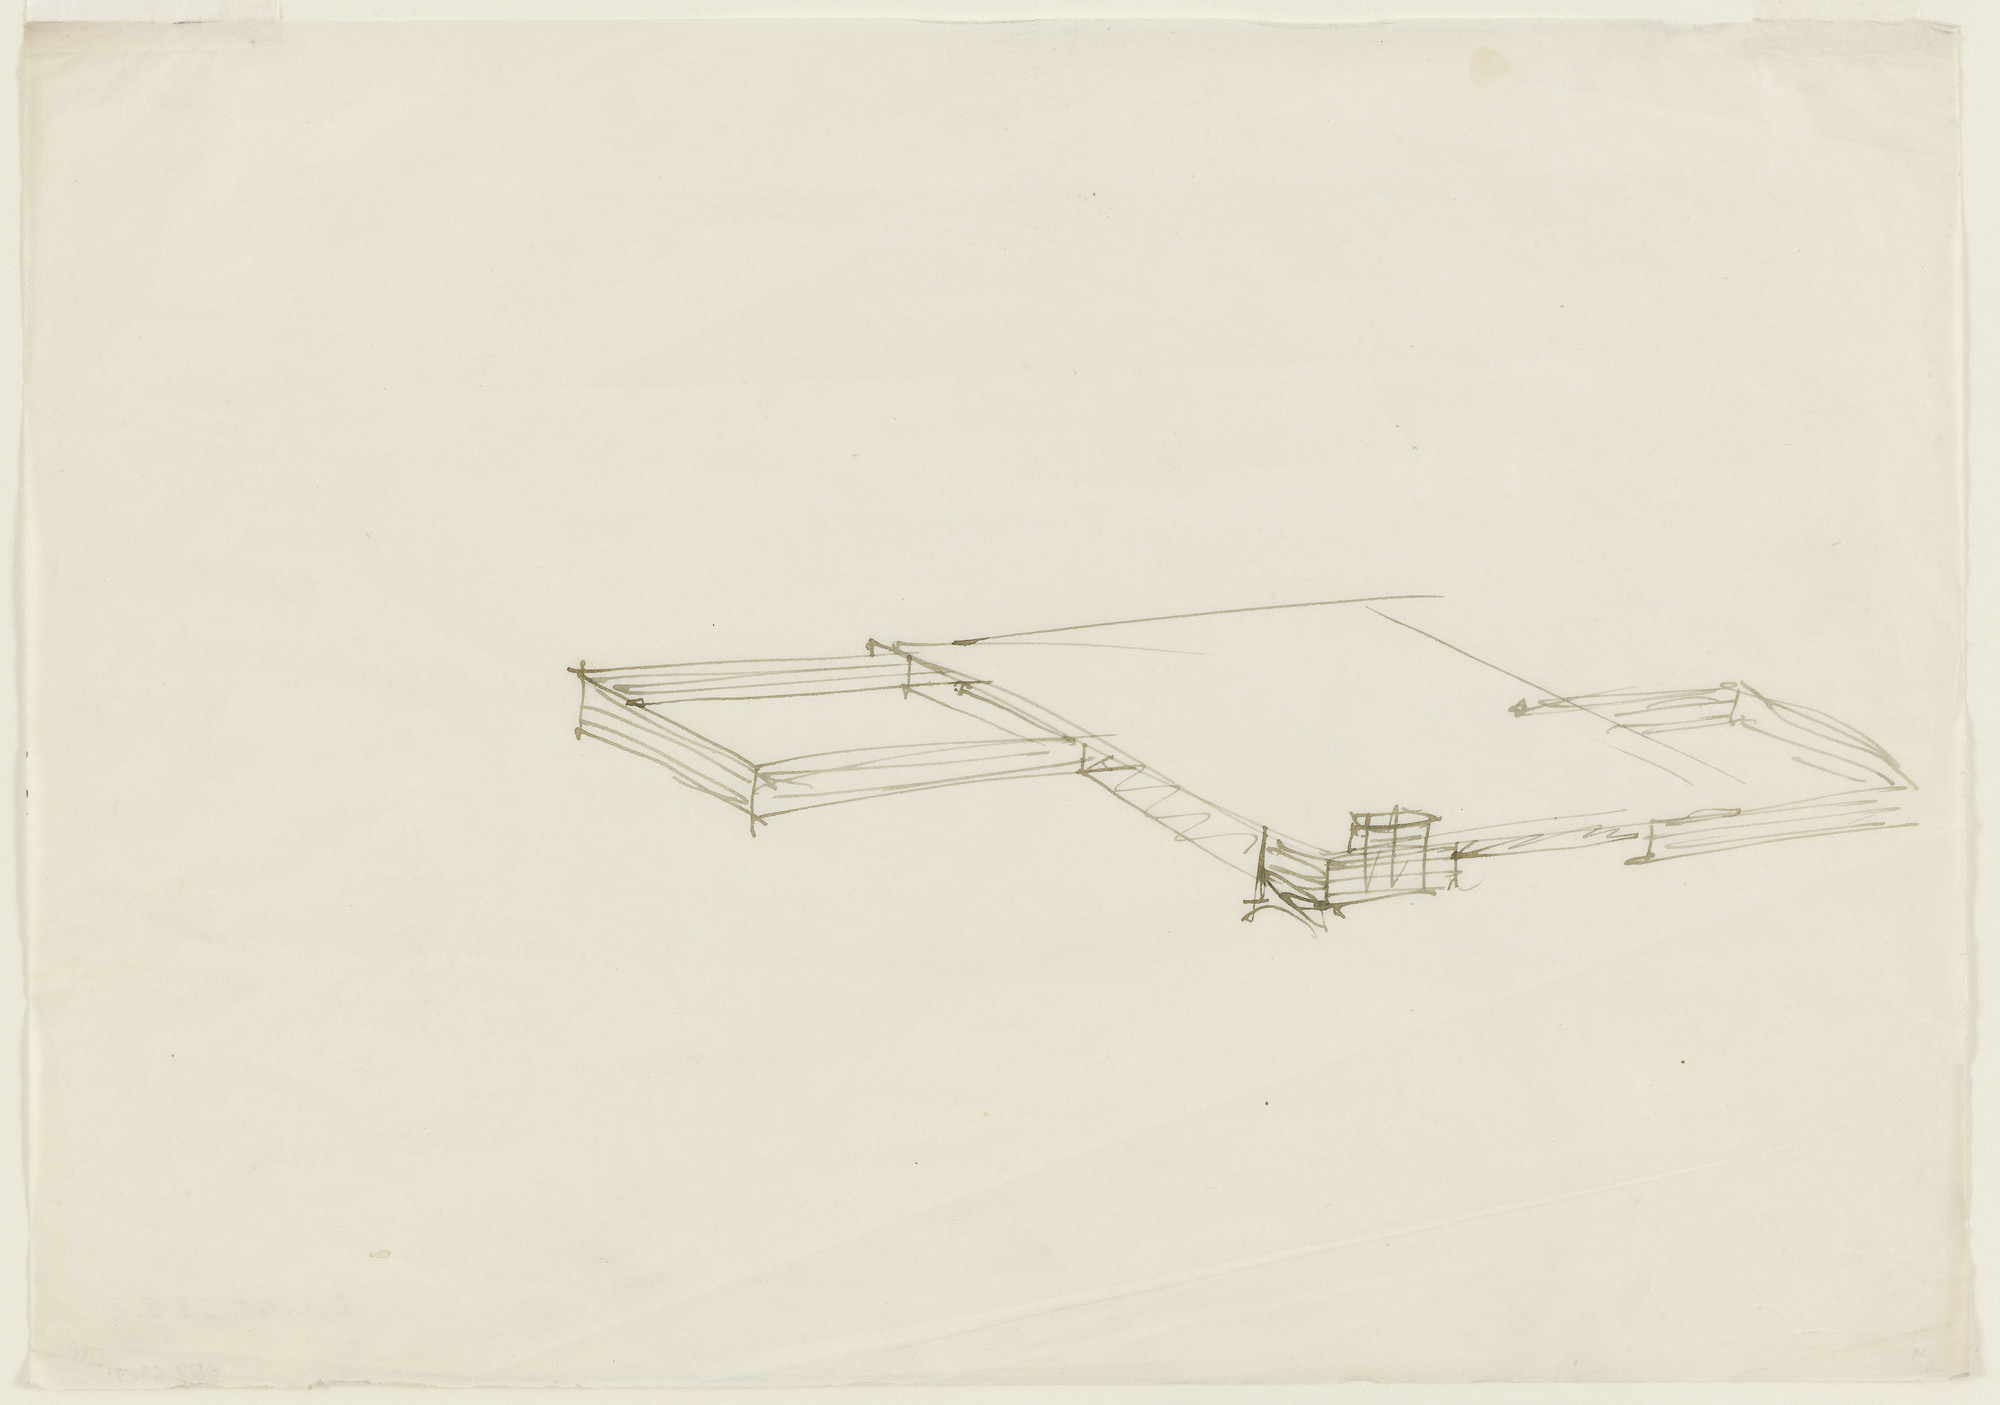 Ludwig Mies van der Rohe. Court House project (Aerial perspective). c. 1934